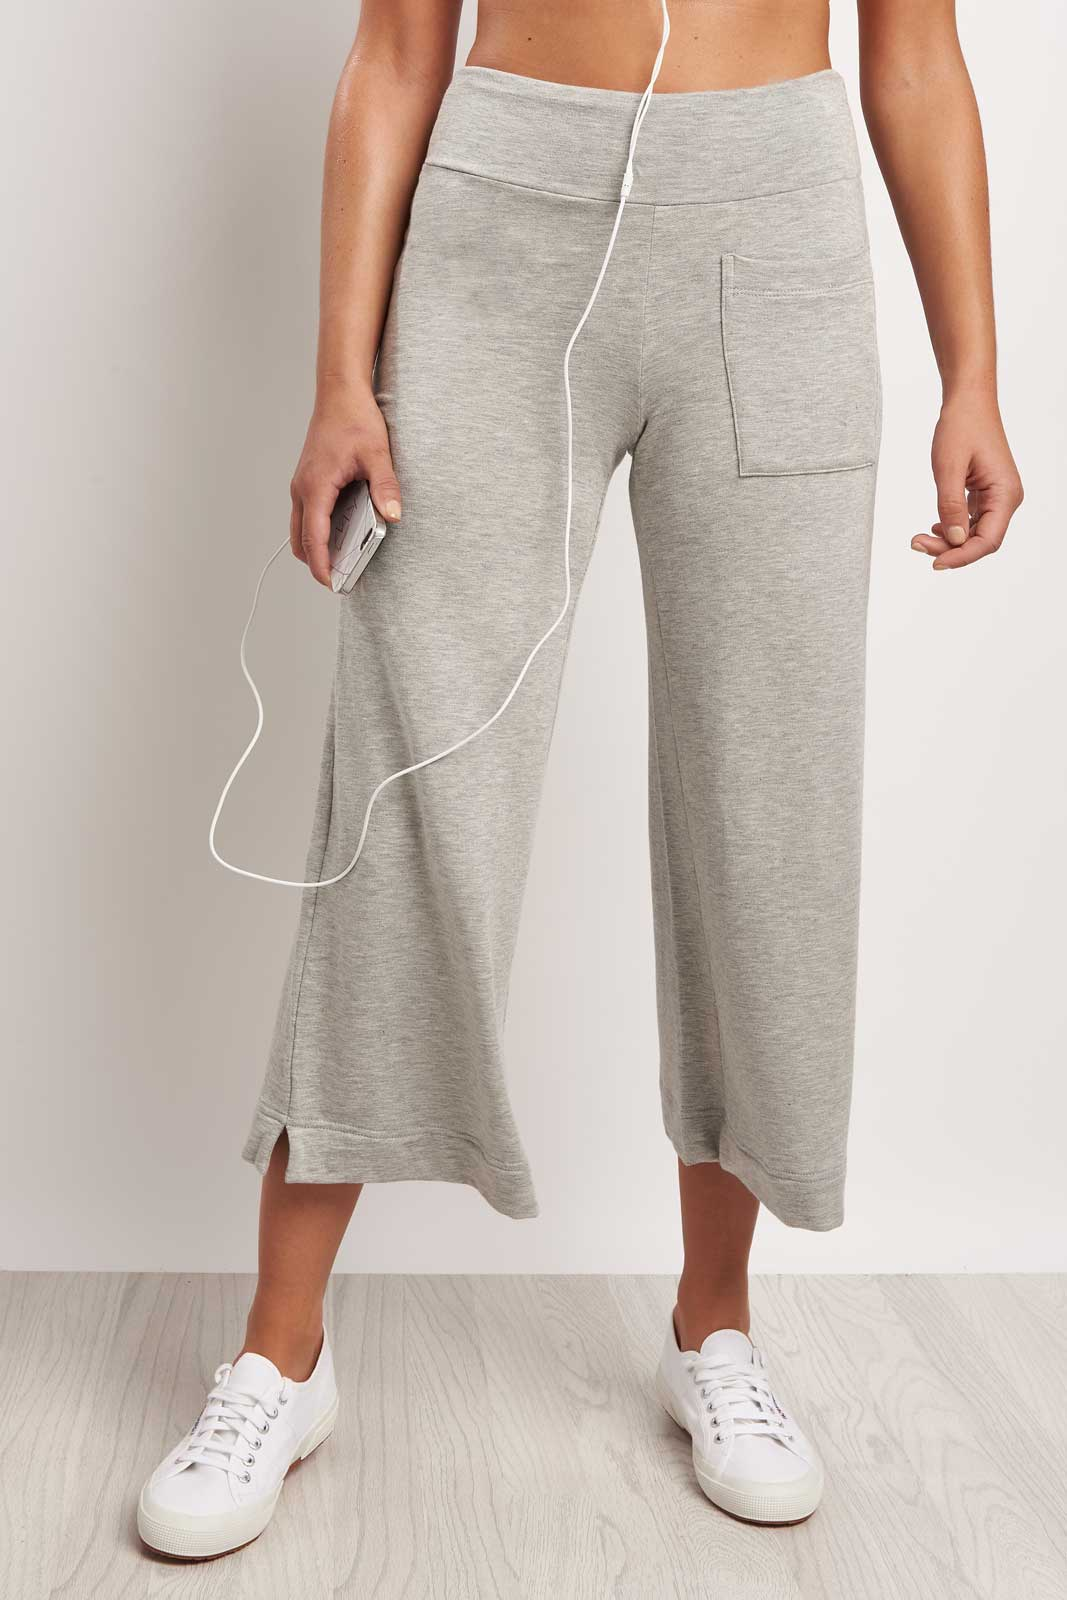 Splits59 Runway Culotte Sweat Grey image 1 - The Sports Edit